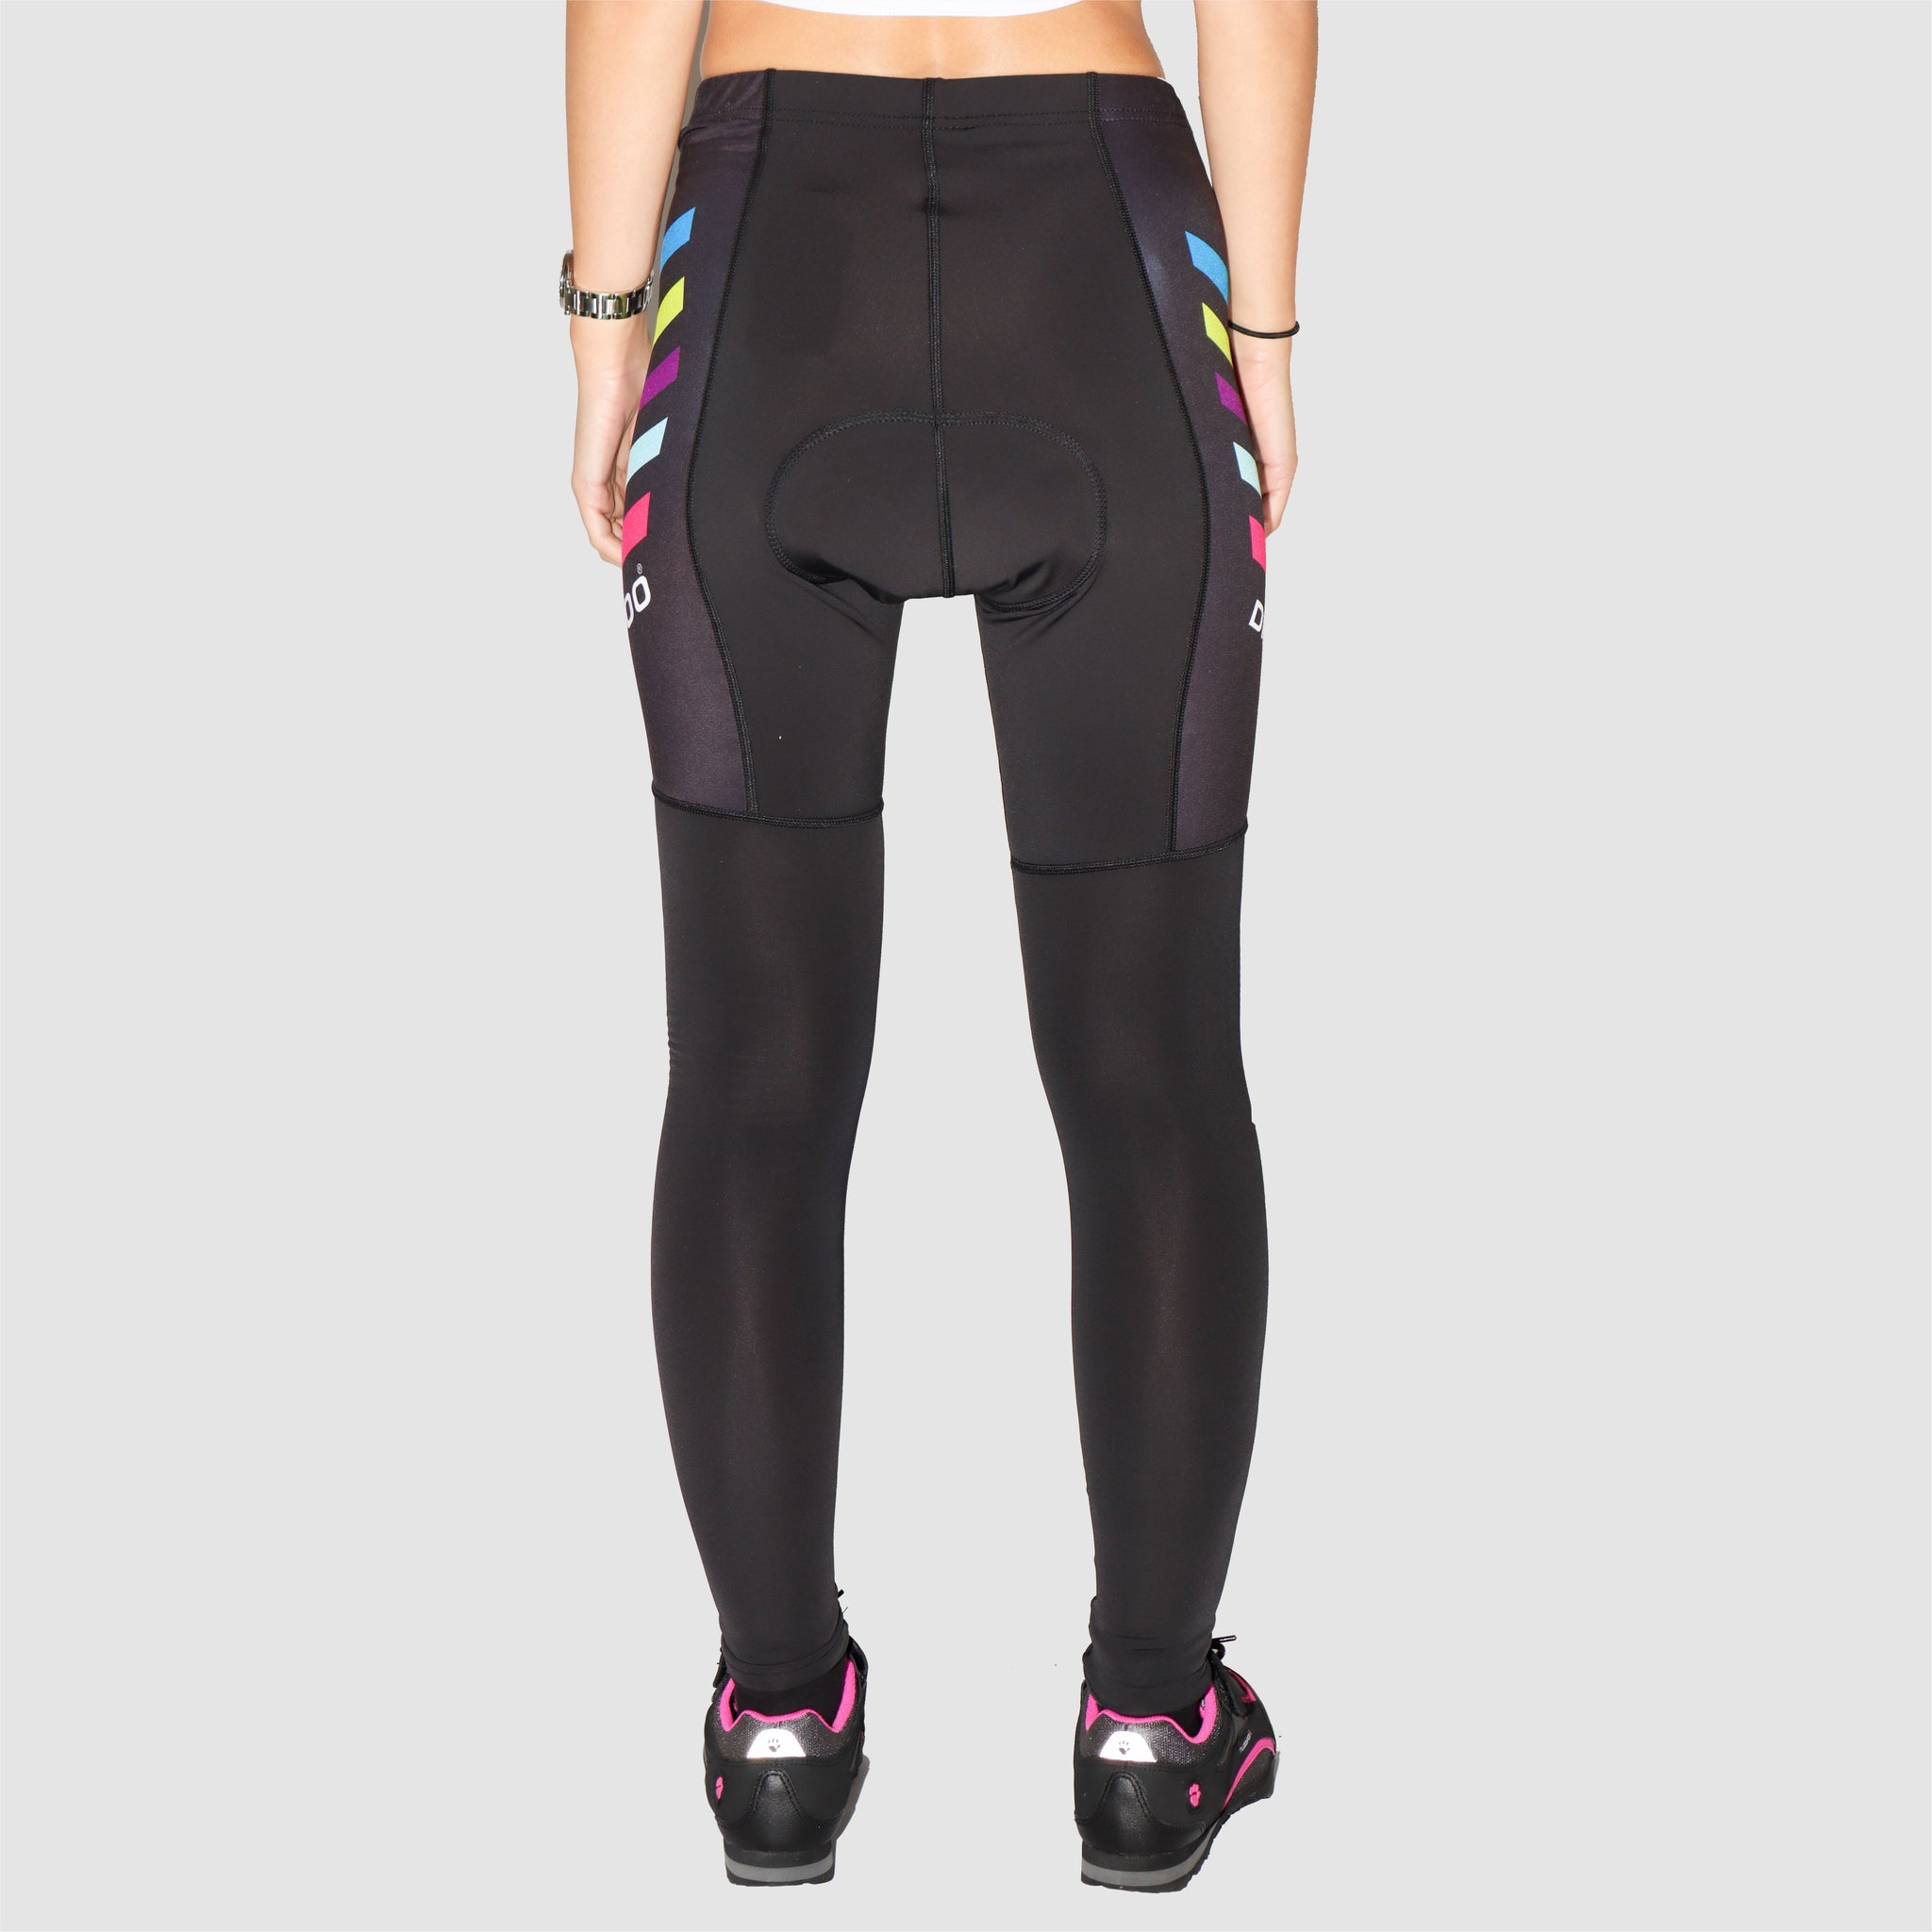 DiDoo Women Pro Padded Winter Cycling Pants Black and Multicolour Strips